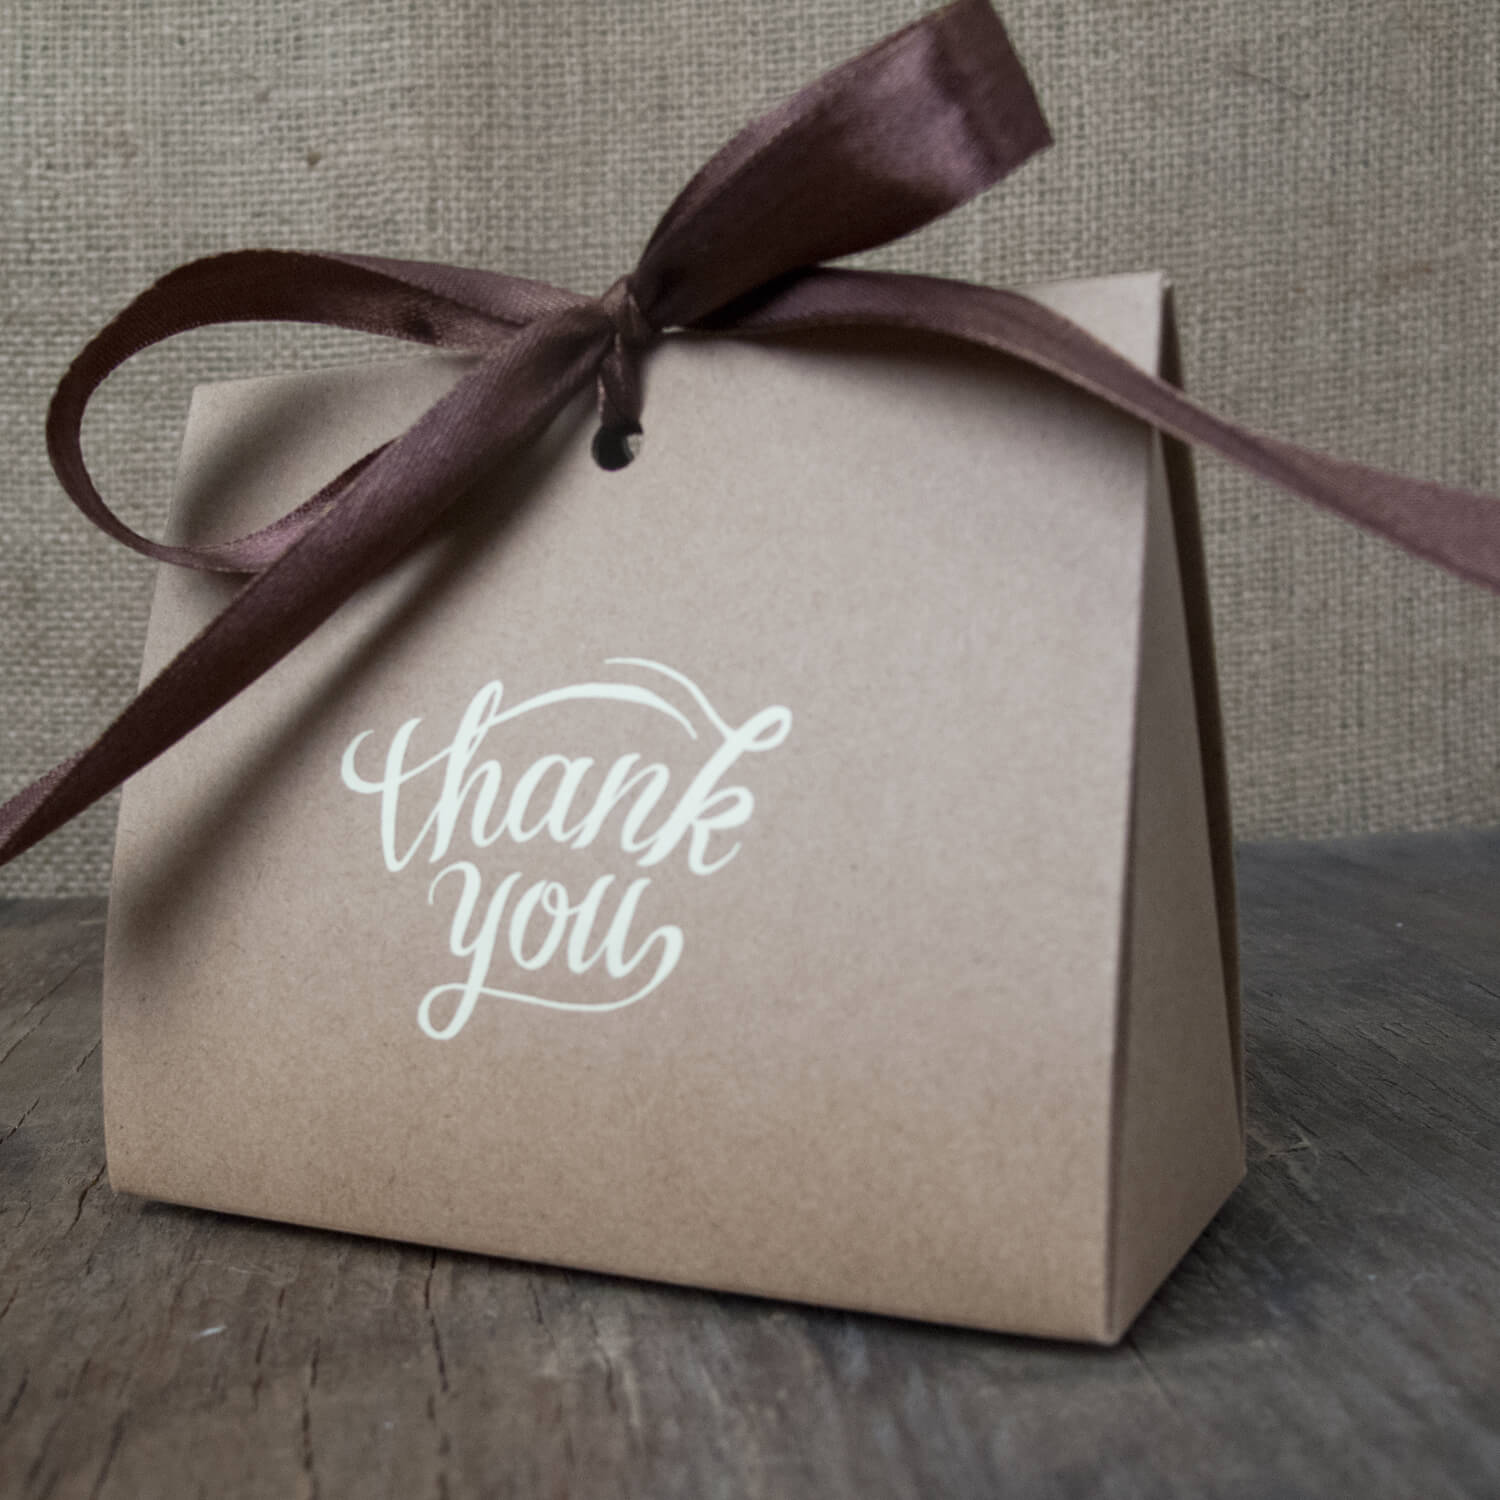 25 - NATURAL RIBBON PURSES WITH BROWN OR CREAM THANK YOU LOGO